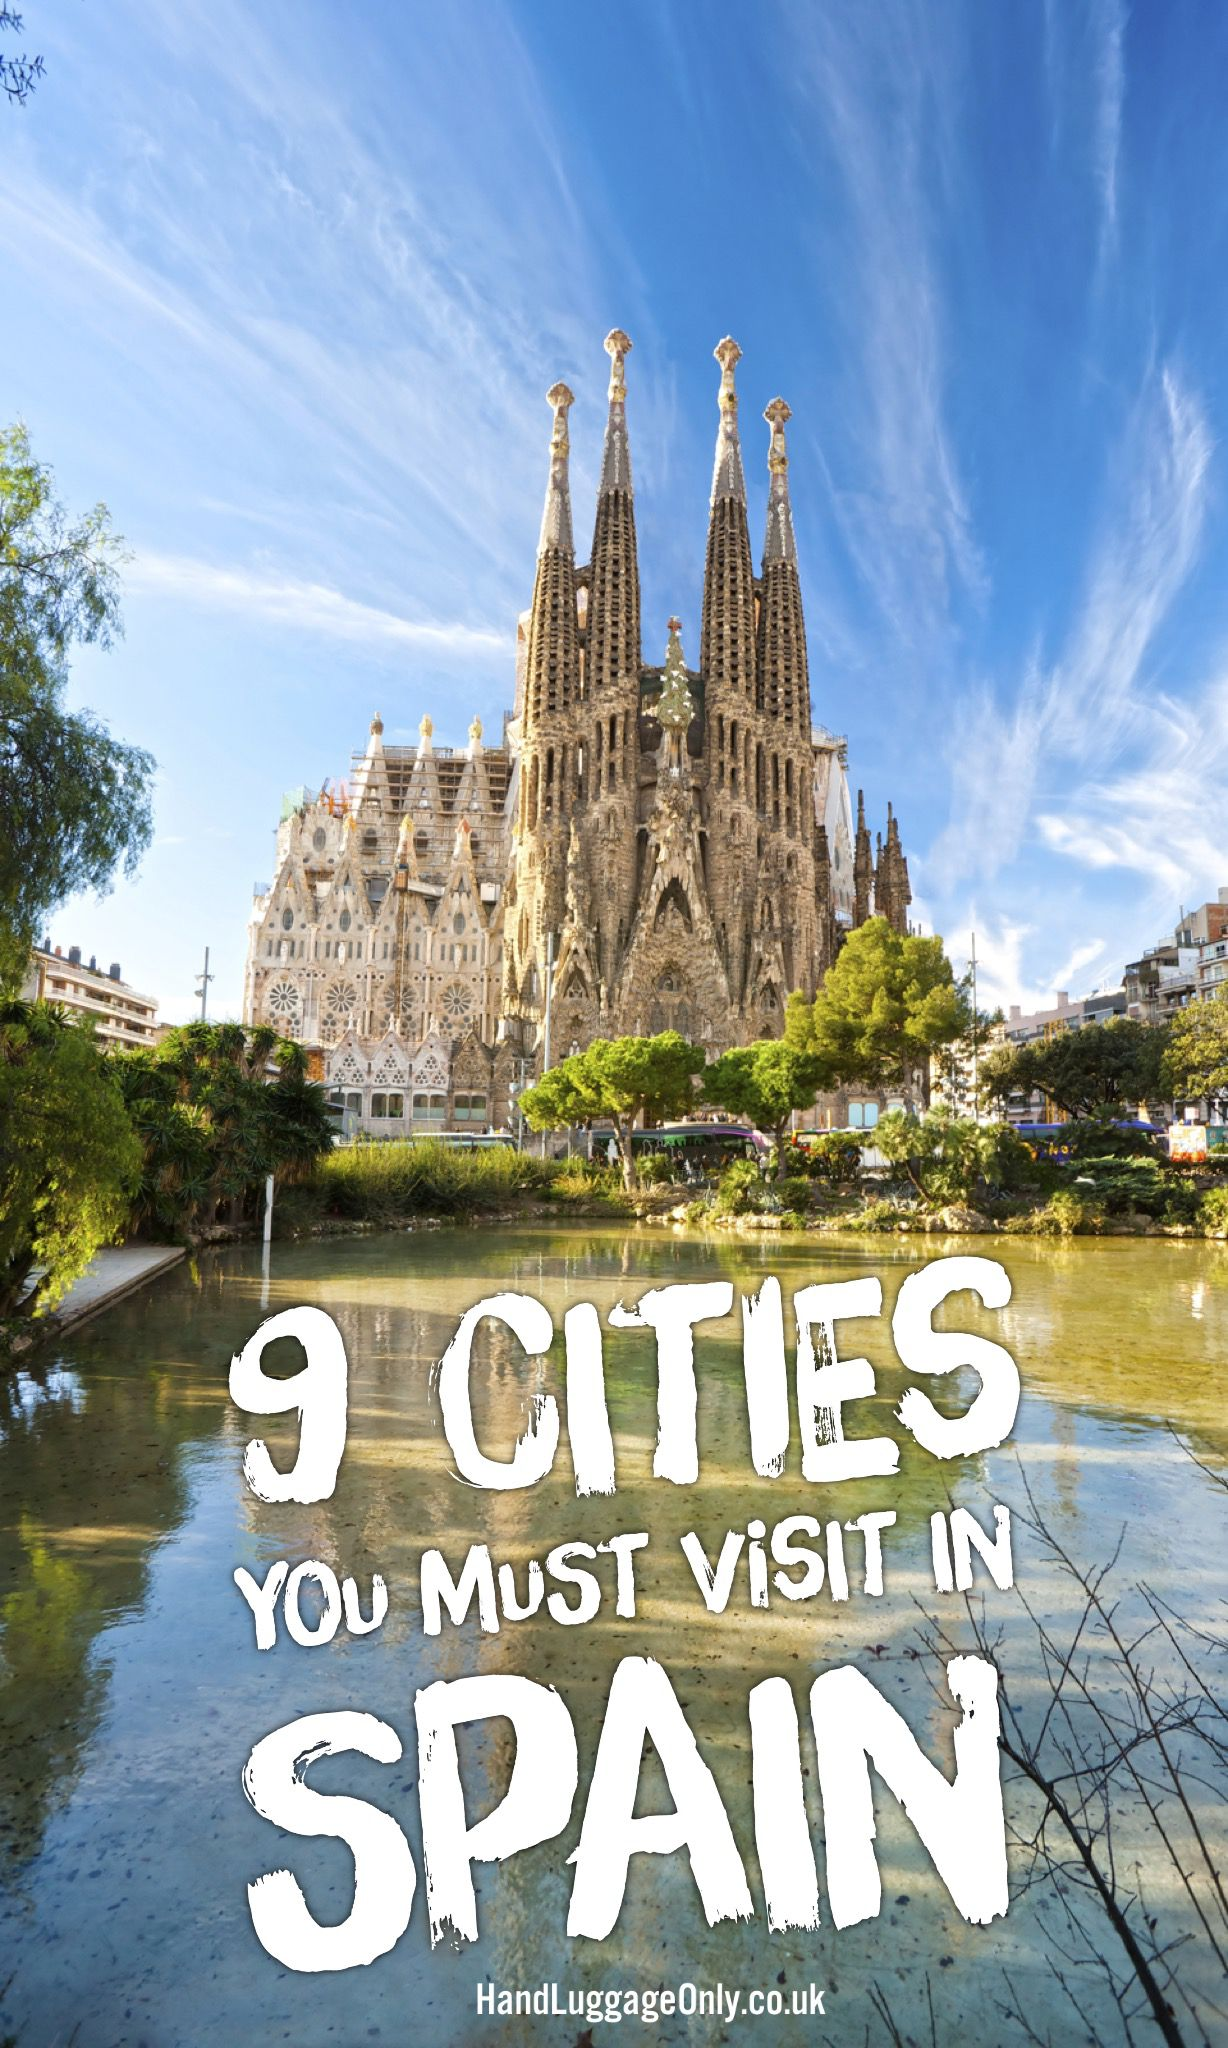 9 Cities You Must Visit In Spain!